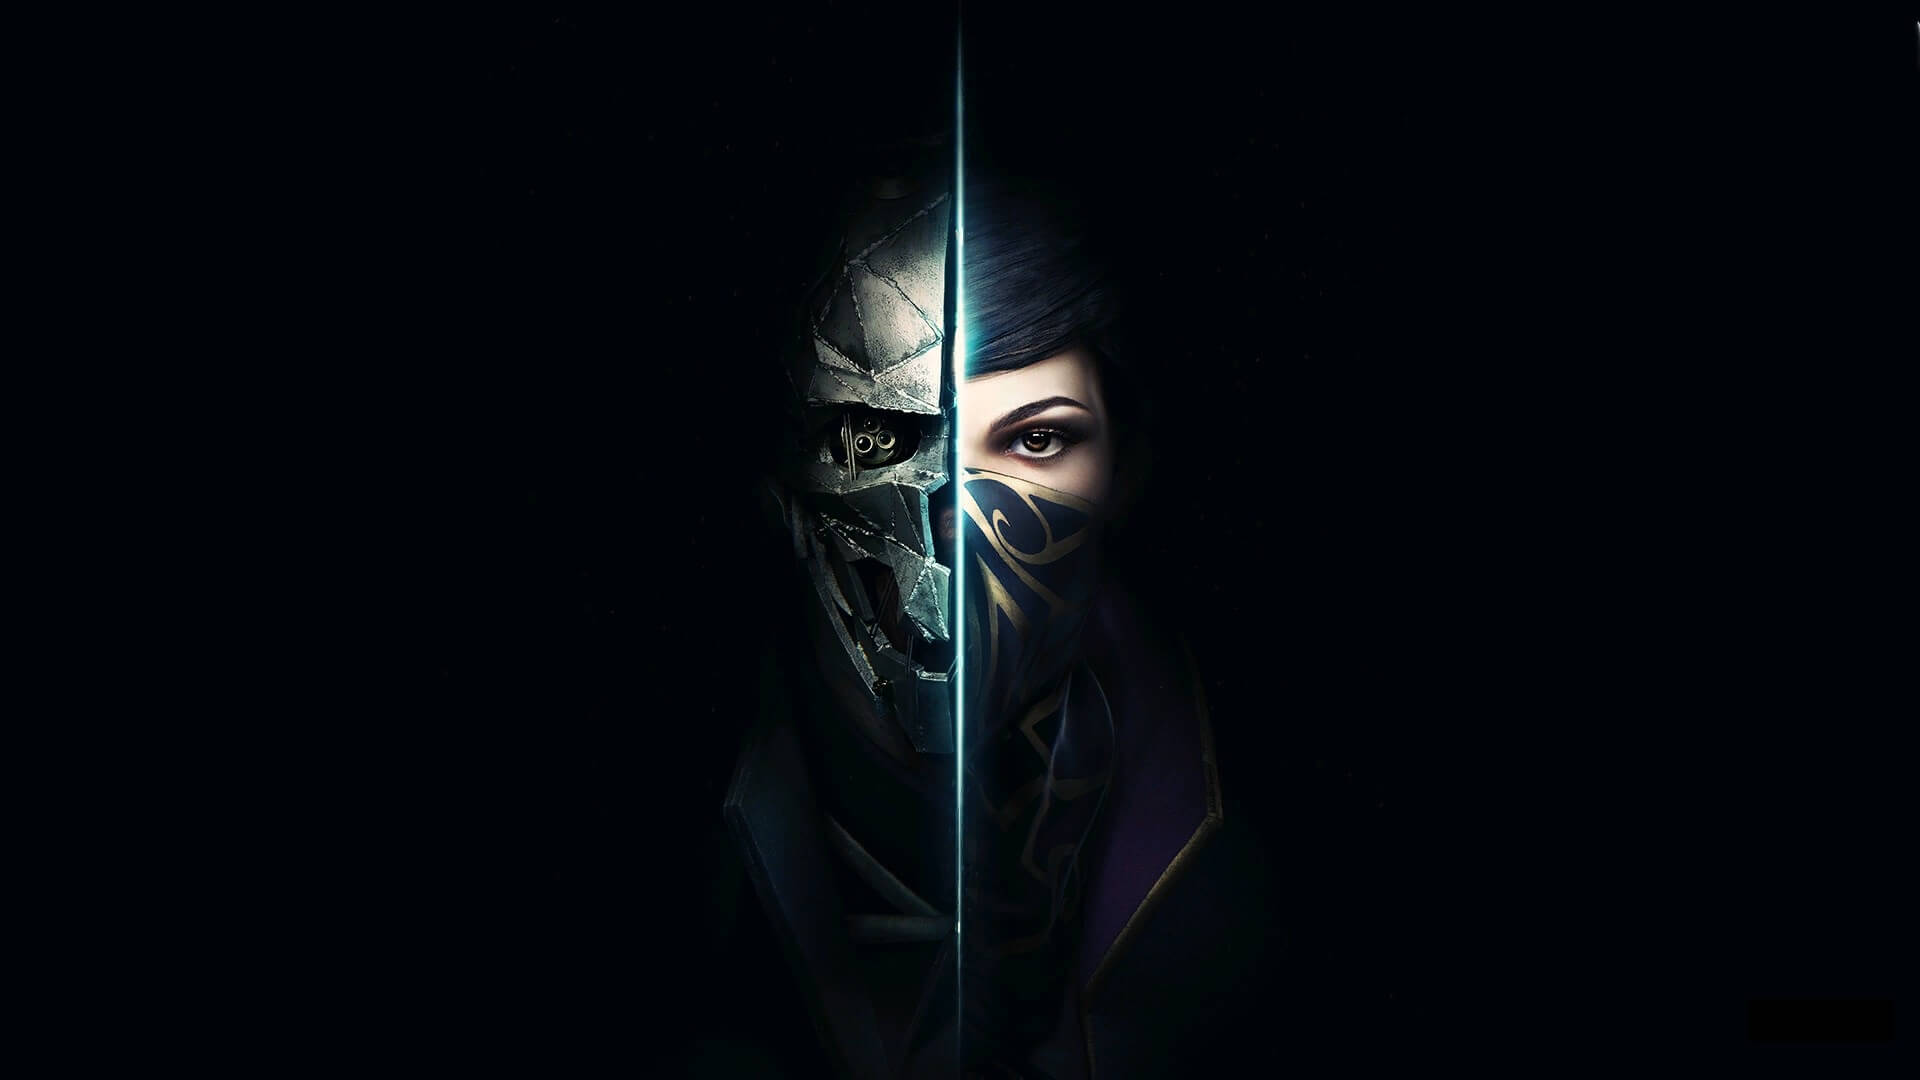 Speedrun Fast: Dishonored 2